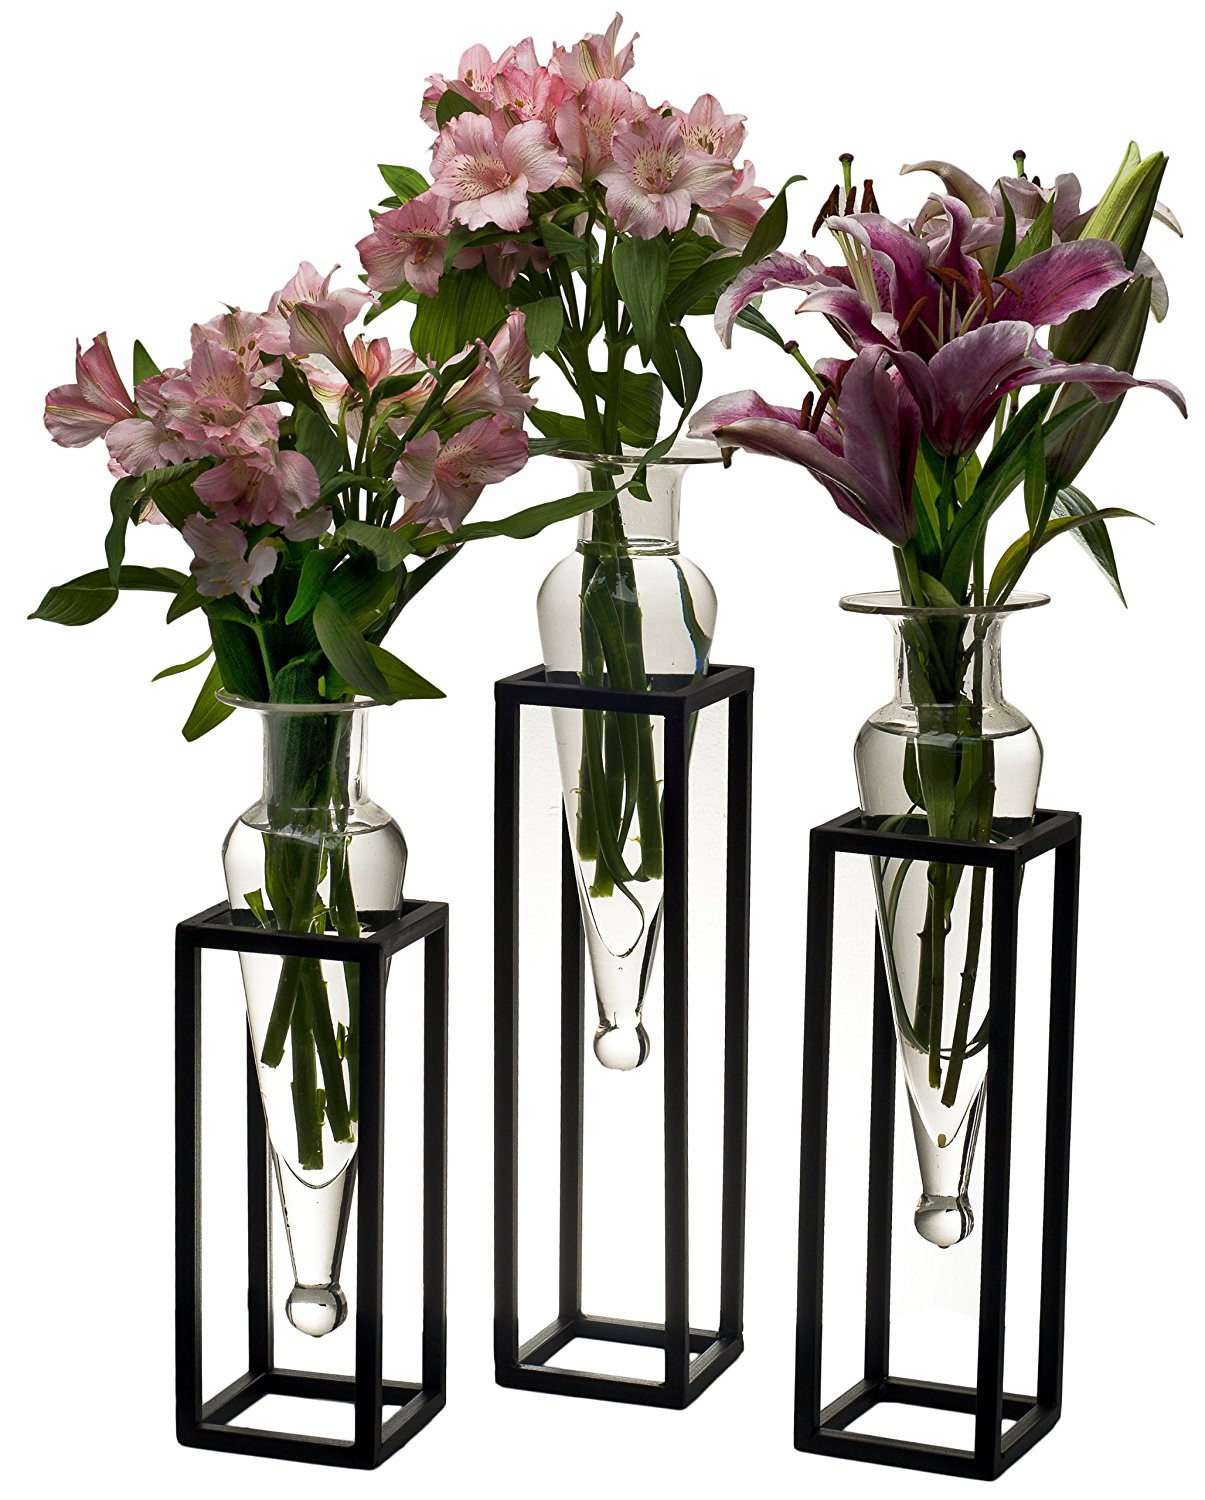 32 inch vases wholesale of cheap square metal tubing sizes find square metal tubing sizes inside get quotations a· set of 3 clear amphorae vases on square tubing metal stands